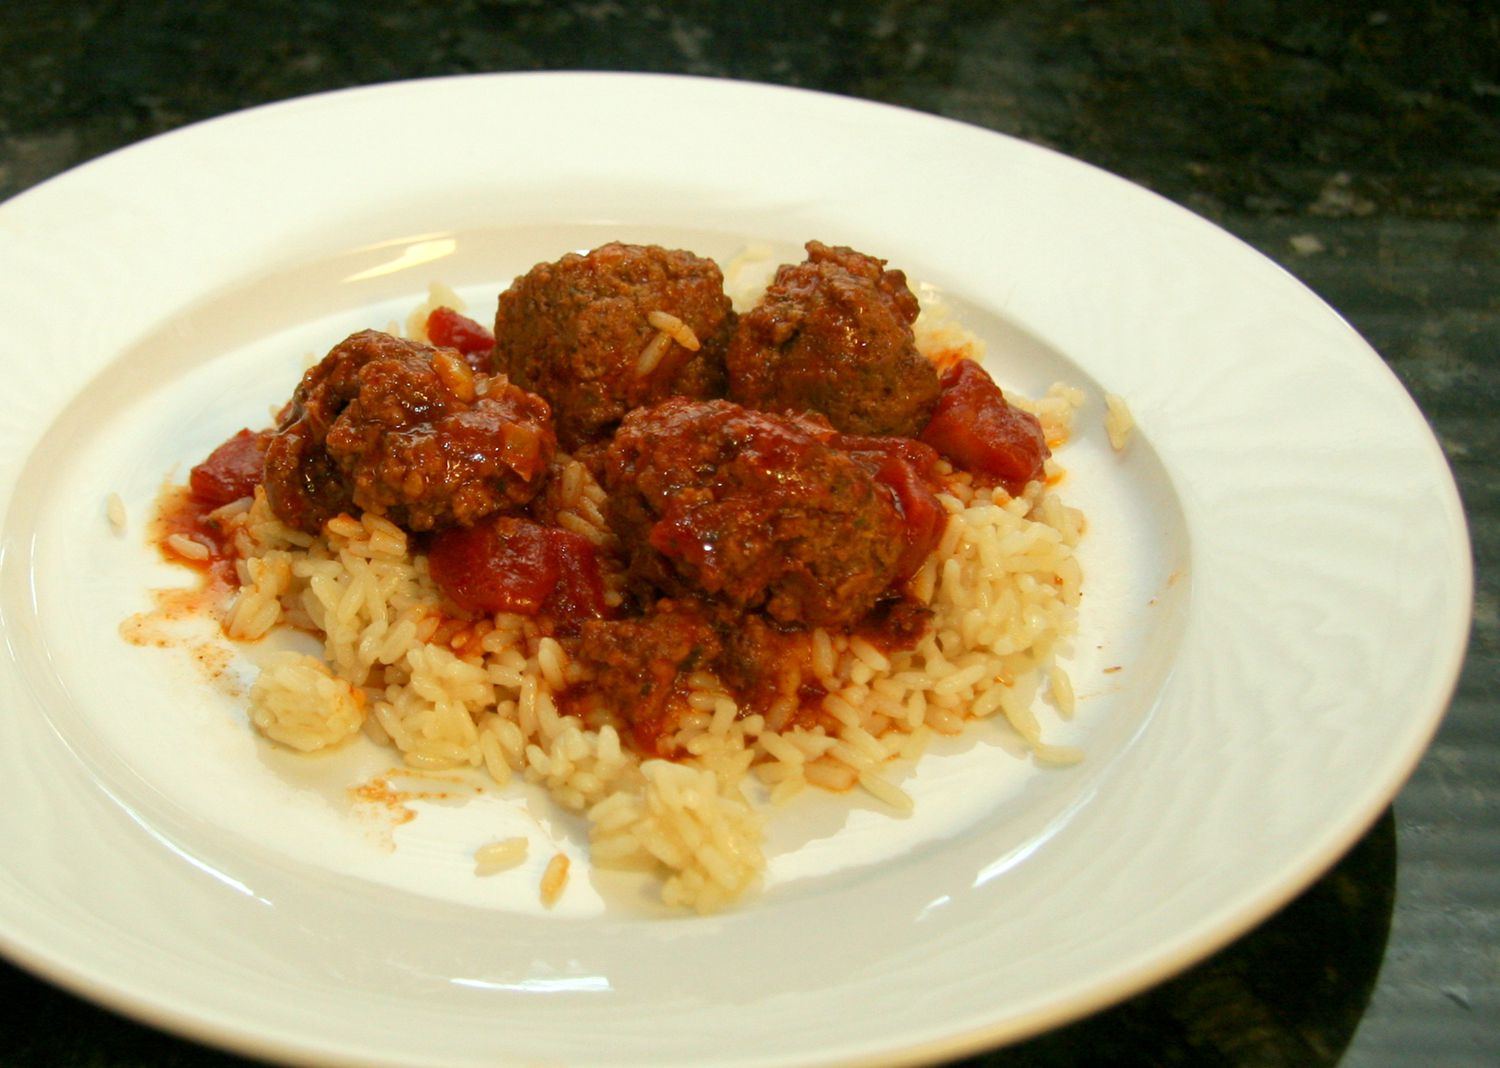 This Tasty Chili Meatballs Recipe Goes Great with Rice or Potatoes